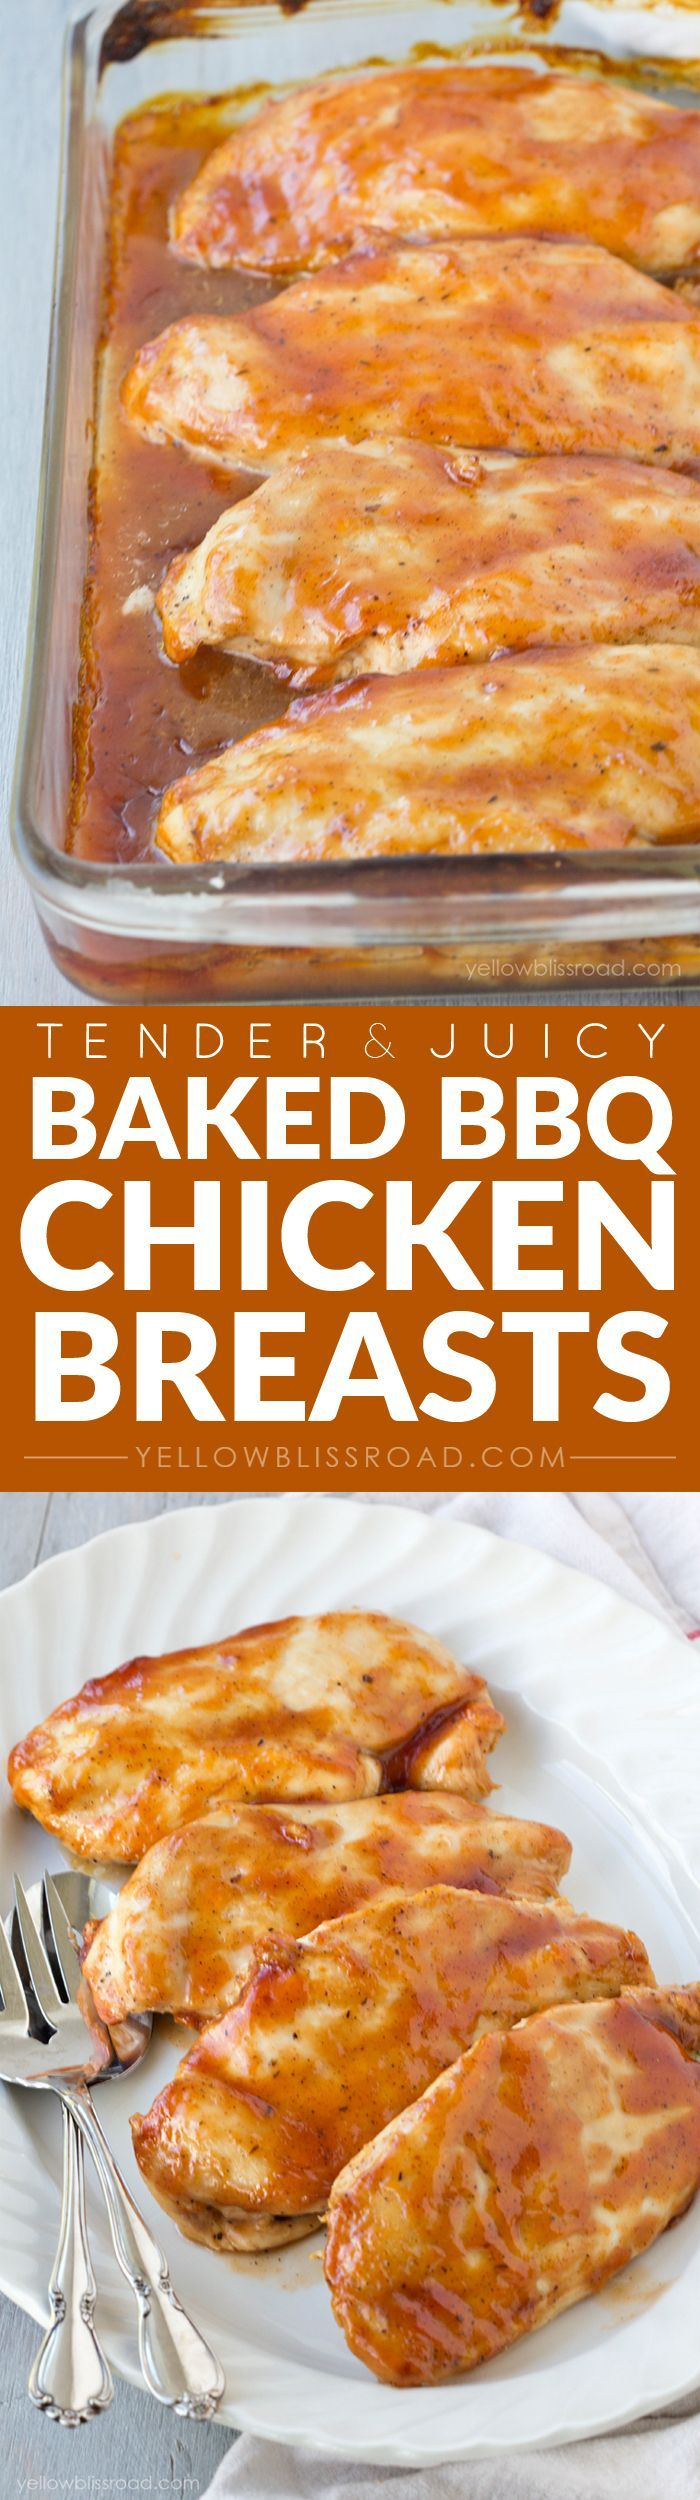 Tender and Juicy Oven Baked Barbecue Chicken Breasts - followed this ckg method with homemade sauce